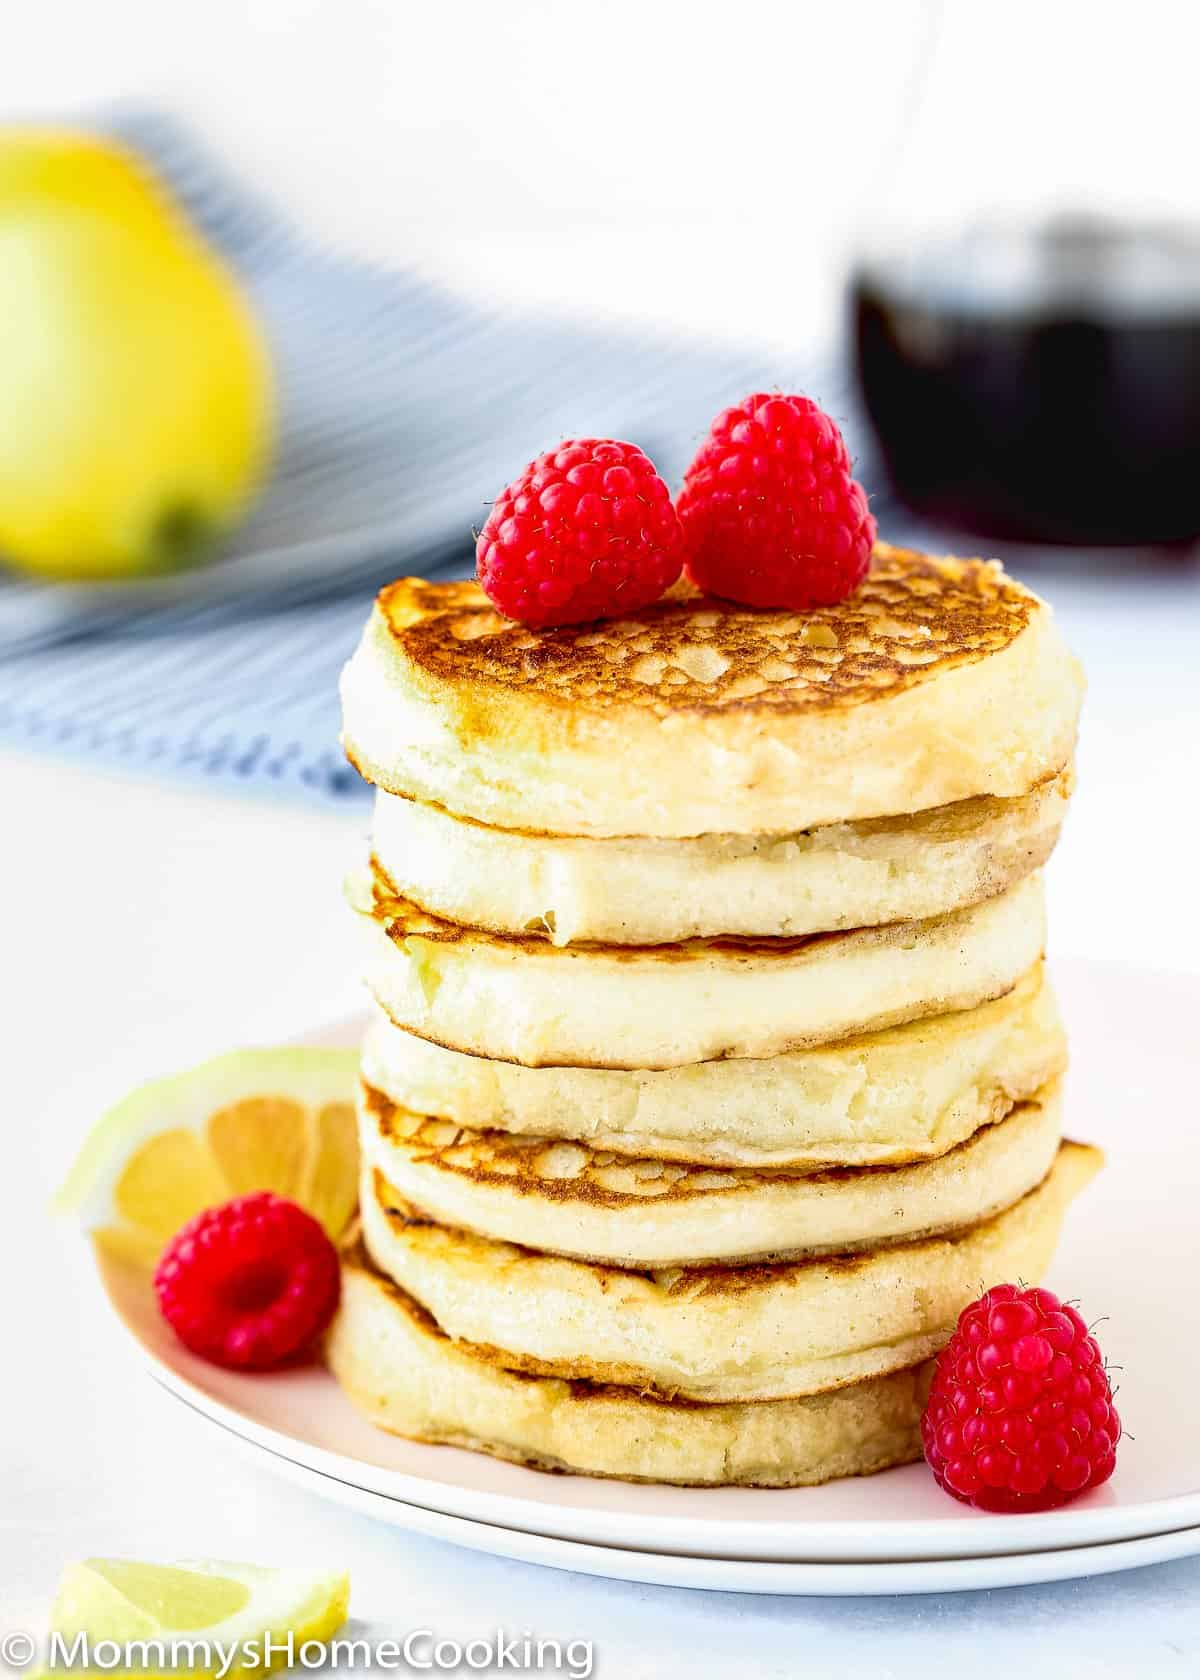 stack of eggless lemon Ricotta pancakes with Raspberries and a lemon slice on a plate.